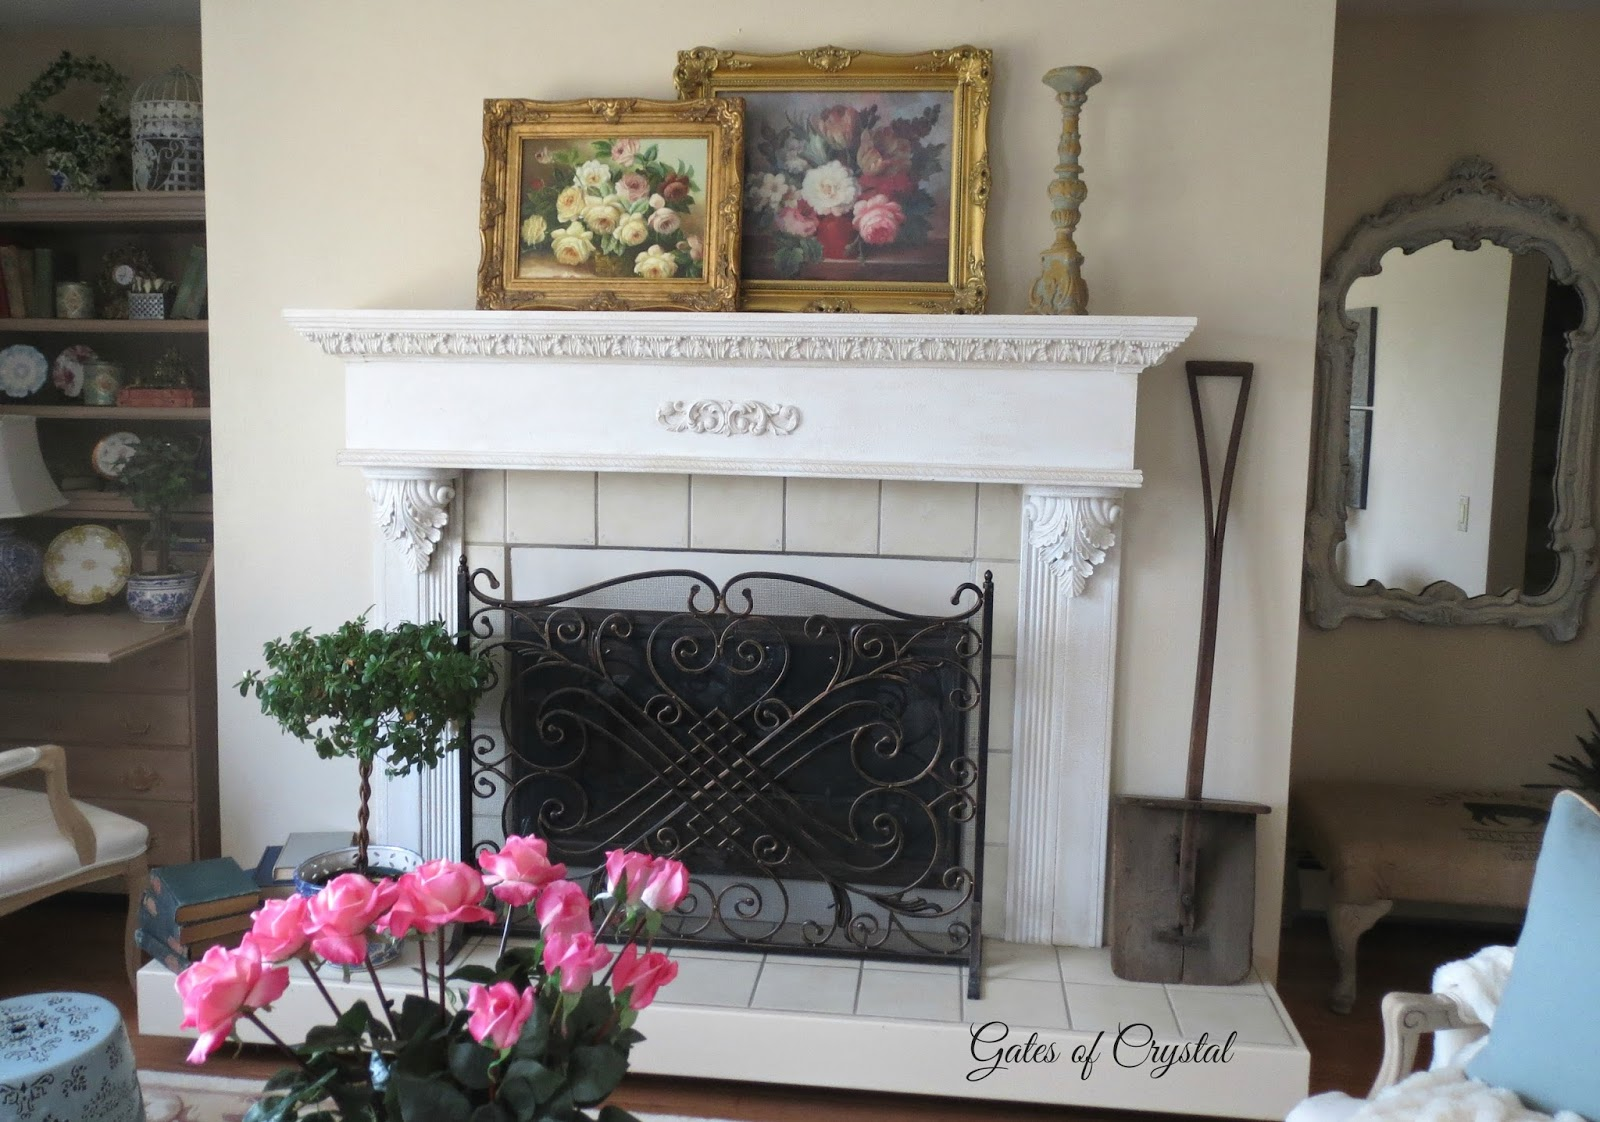 gates of crystal florals beams and a new coffee table in the